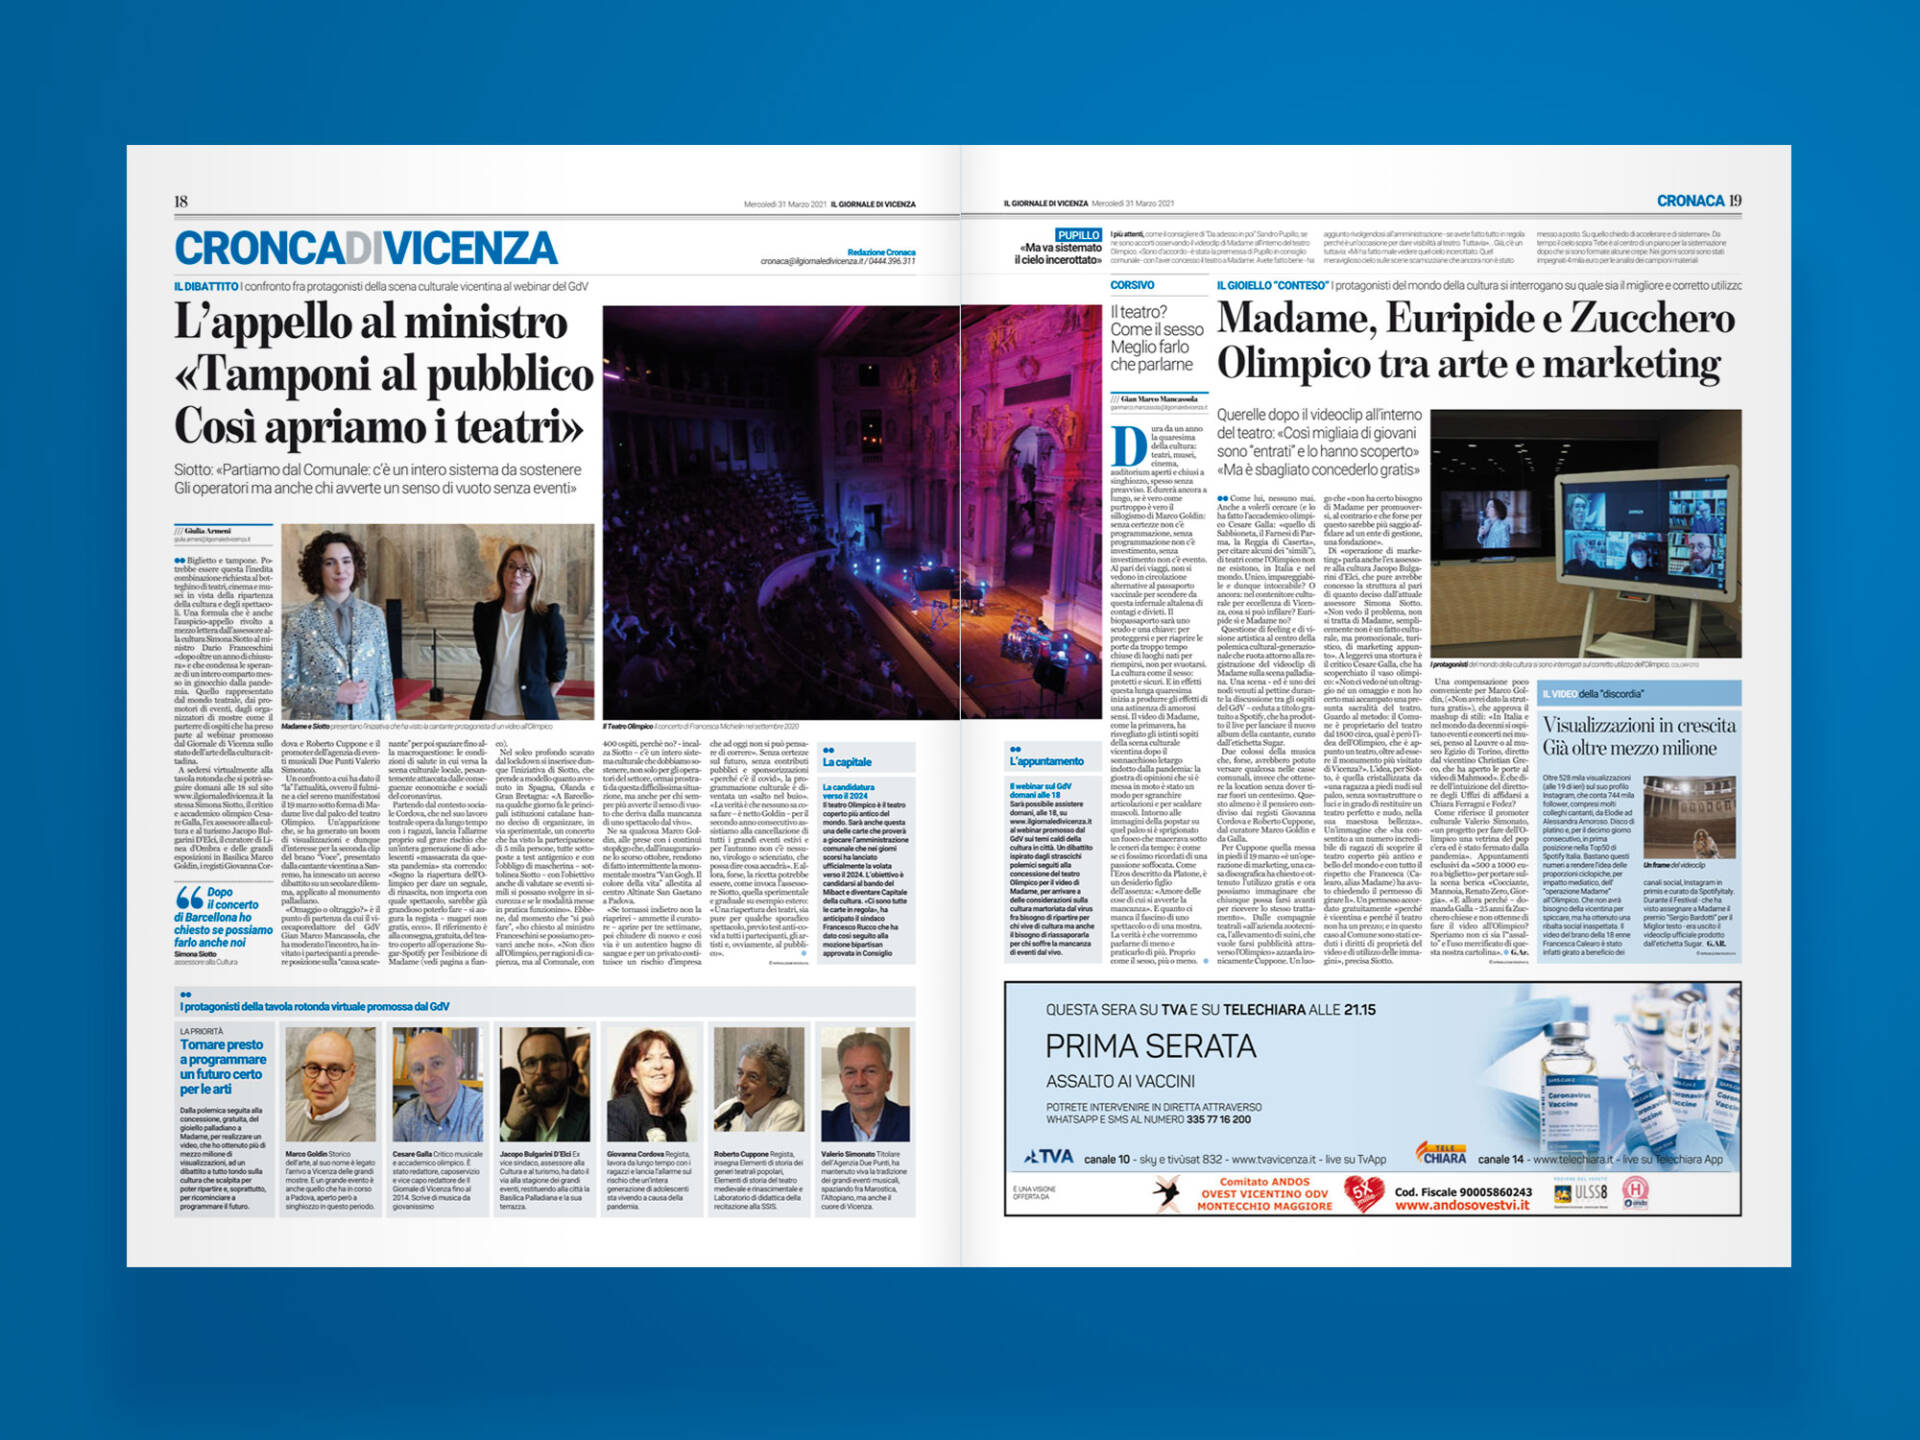 Il-Gionrale-Di-Vicenza-04-Wenceslau-News-Design-2021